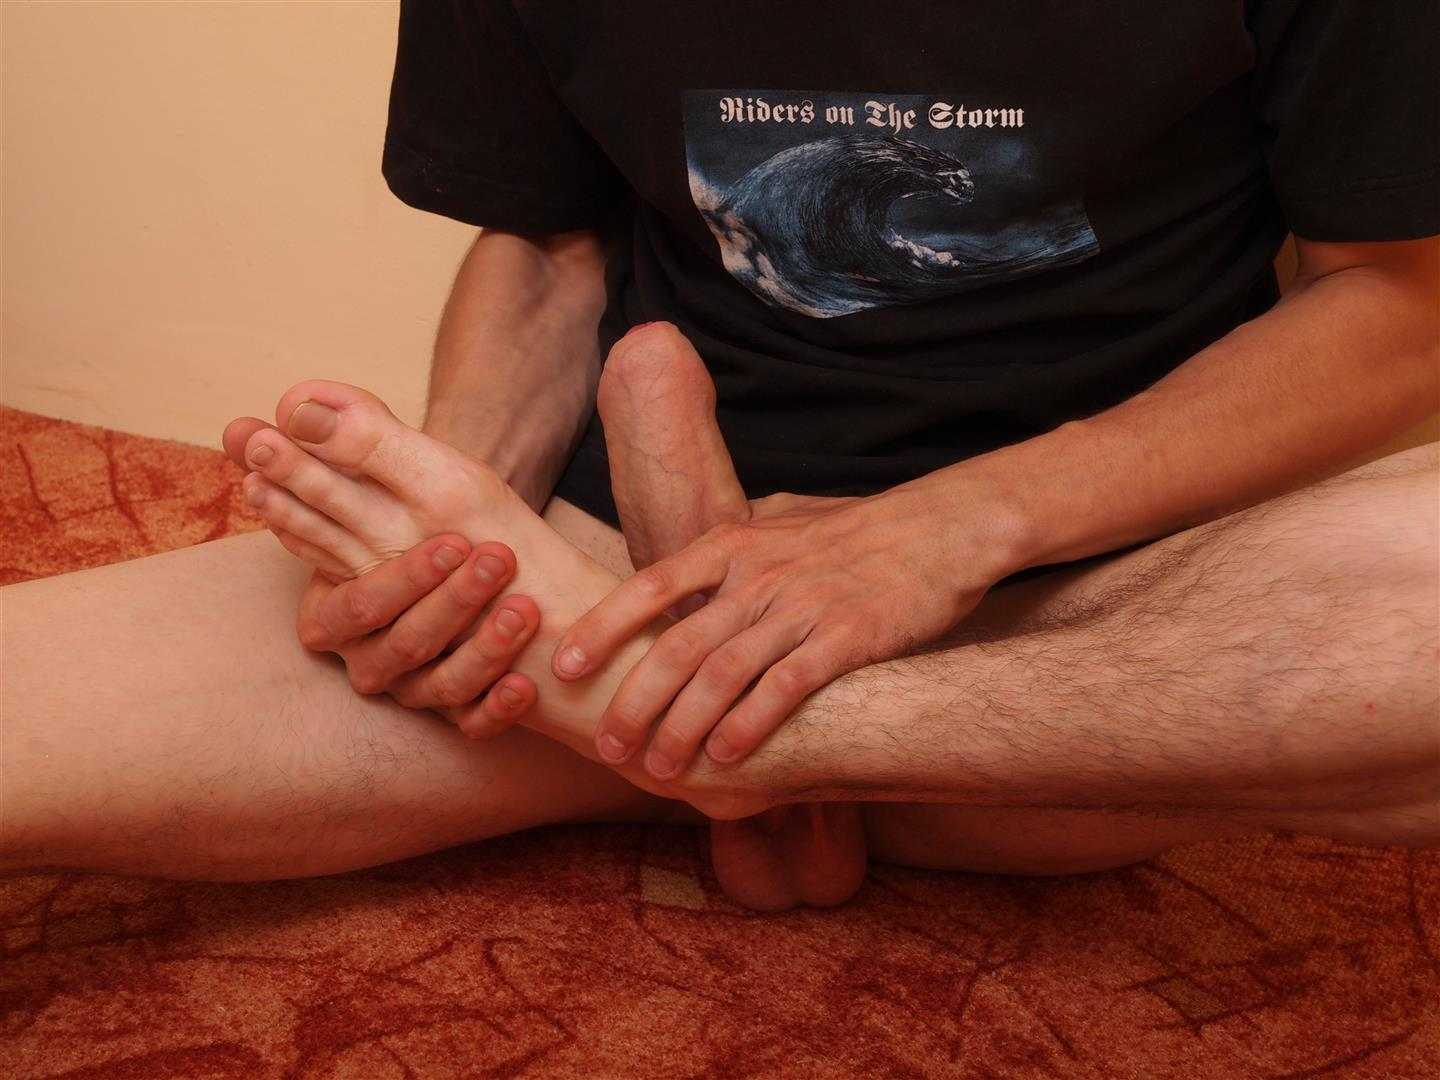 Toe Sucking Guys Eryk Twink Playing With His Feet and Big Uncut Cock Amateur Gay Porn 13 Twink Uses His Shoes and Socks To Jerk His Thick Uncut Cock